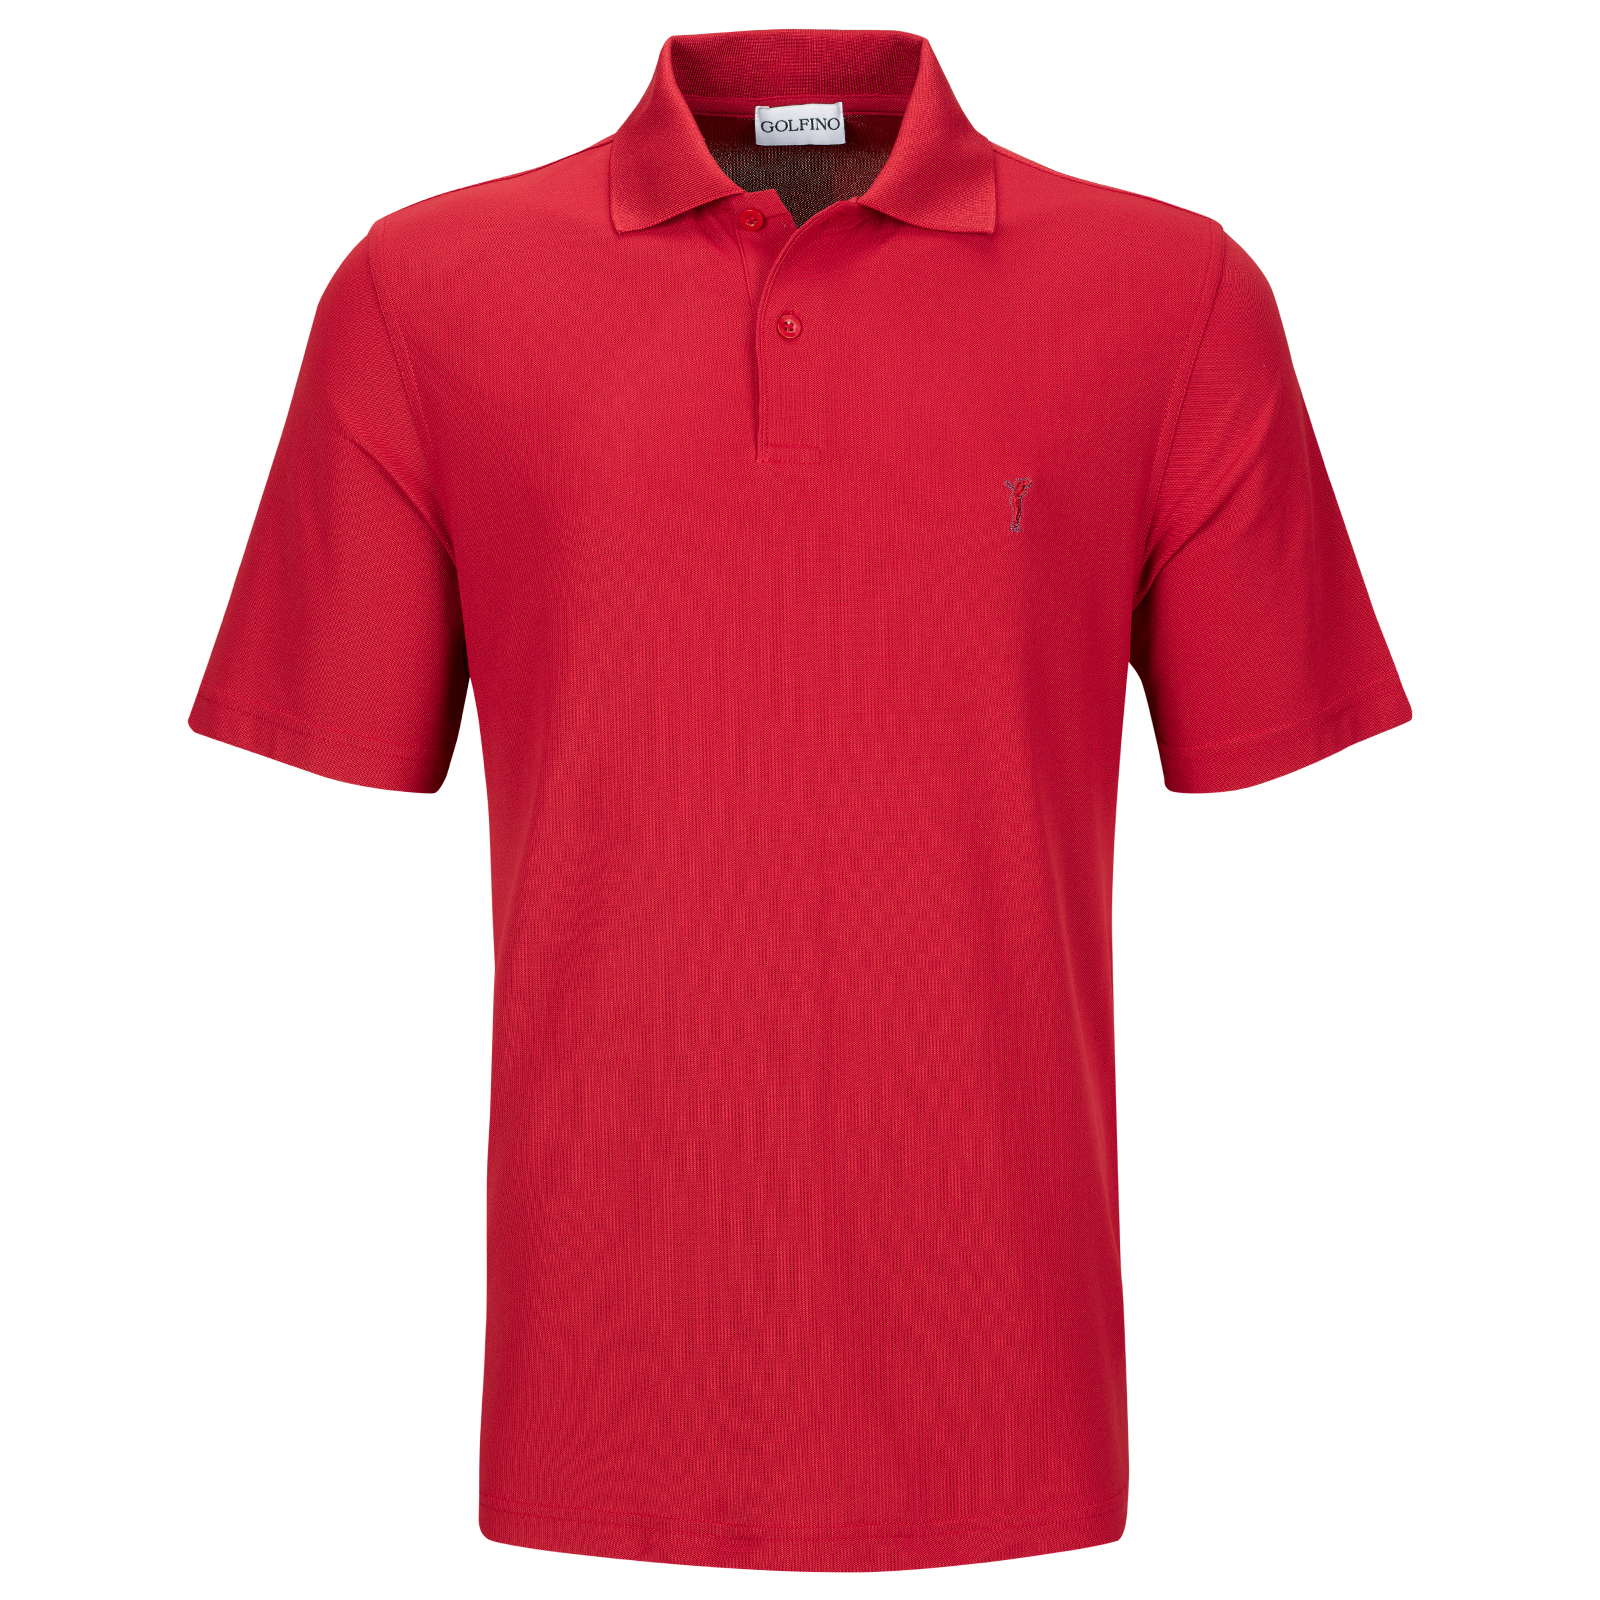 Golf Performance Wear Herren Kurzarm Polohemd mit Moisture Management